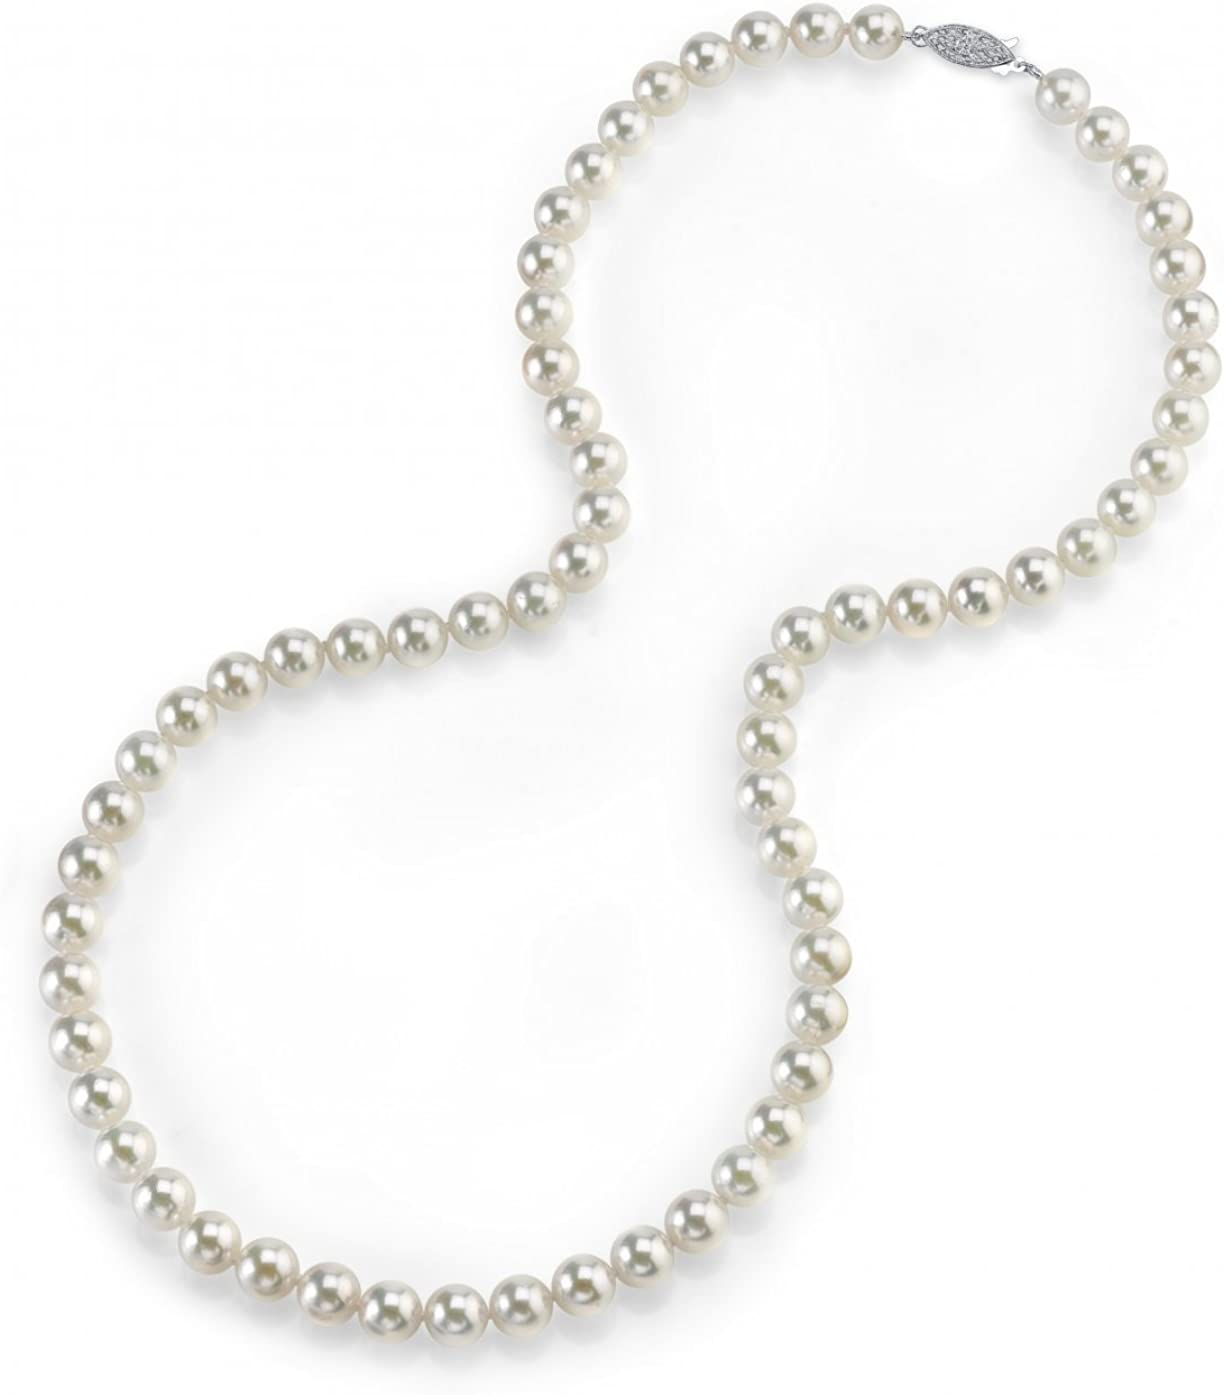 THE PEARL SOURCE 14K Gold 5.5-6.0mm AAA Quality Round Genuine White Japanese Akoya Saltwater Cultured Pearl Necklace in 24